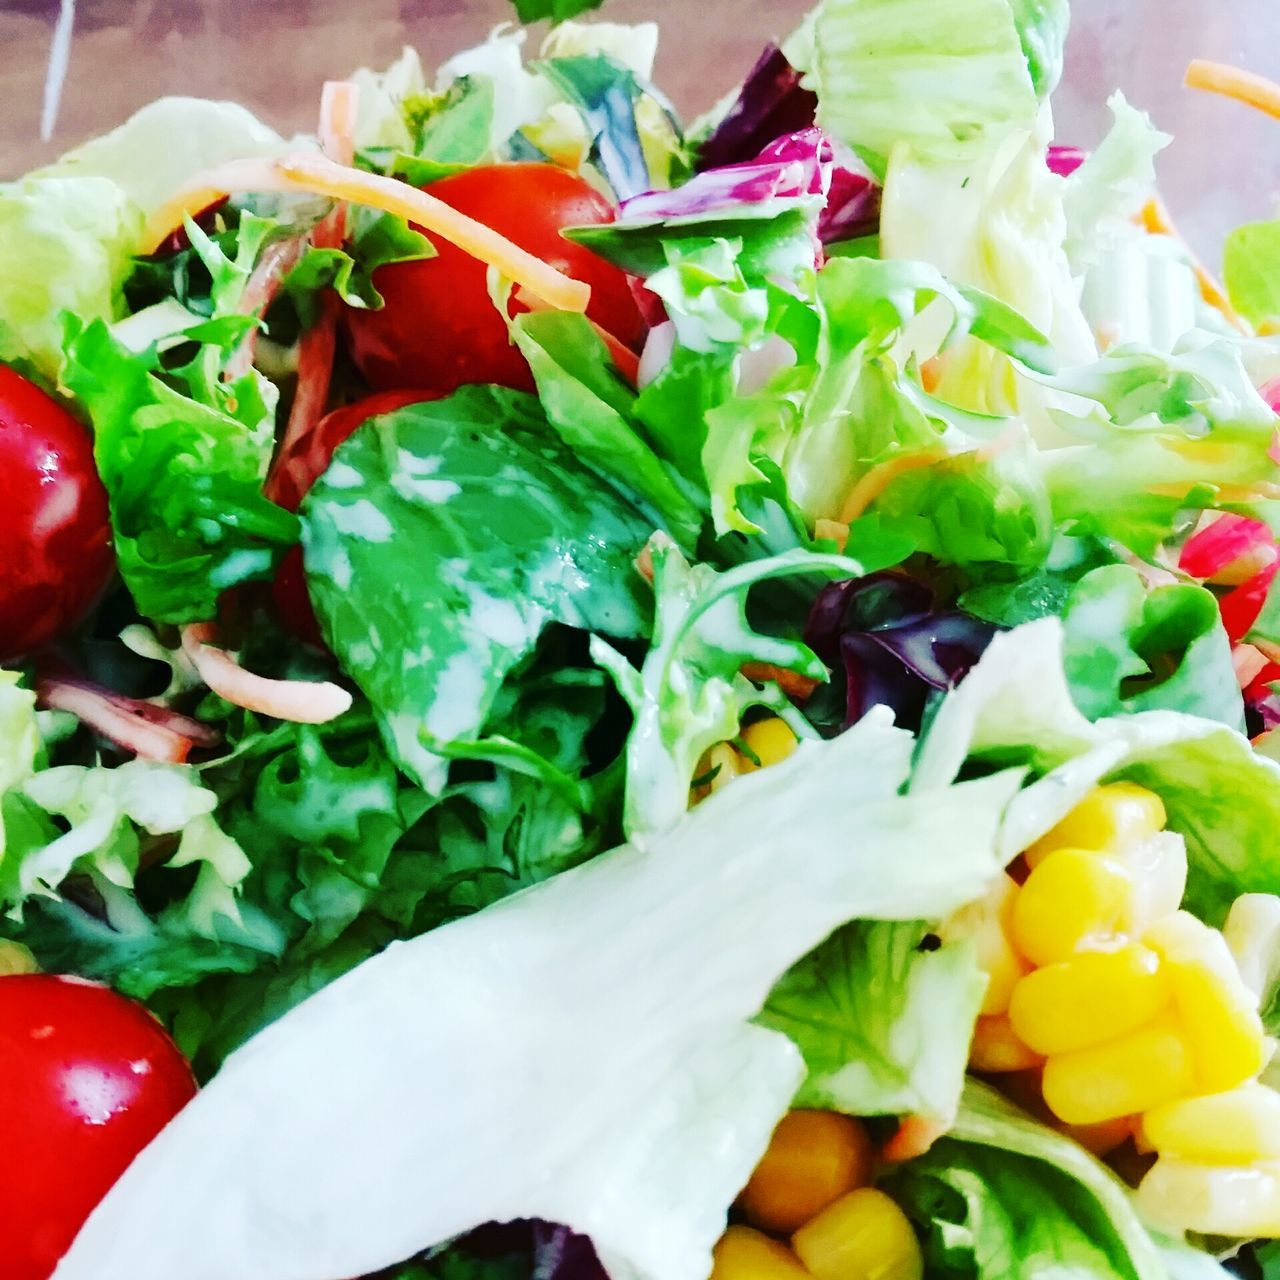 food, food and drink, vegetable, salad, healthy eating, freshness, no people, tomato, close-up, ready-to-eat, indoors, lettuce, day